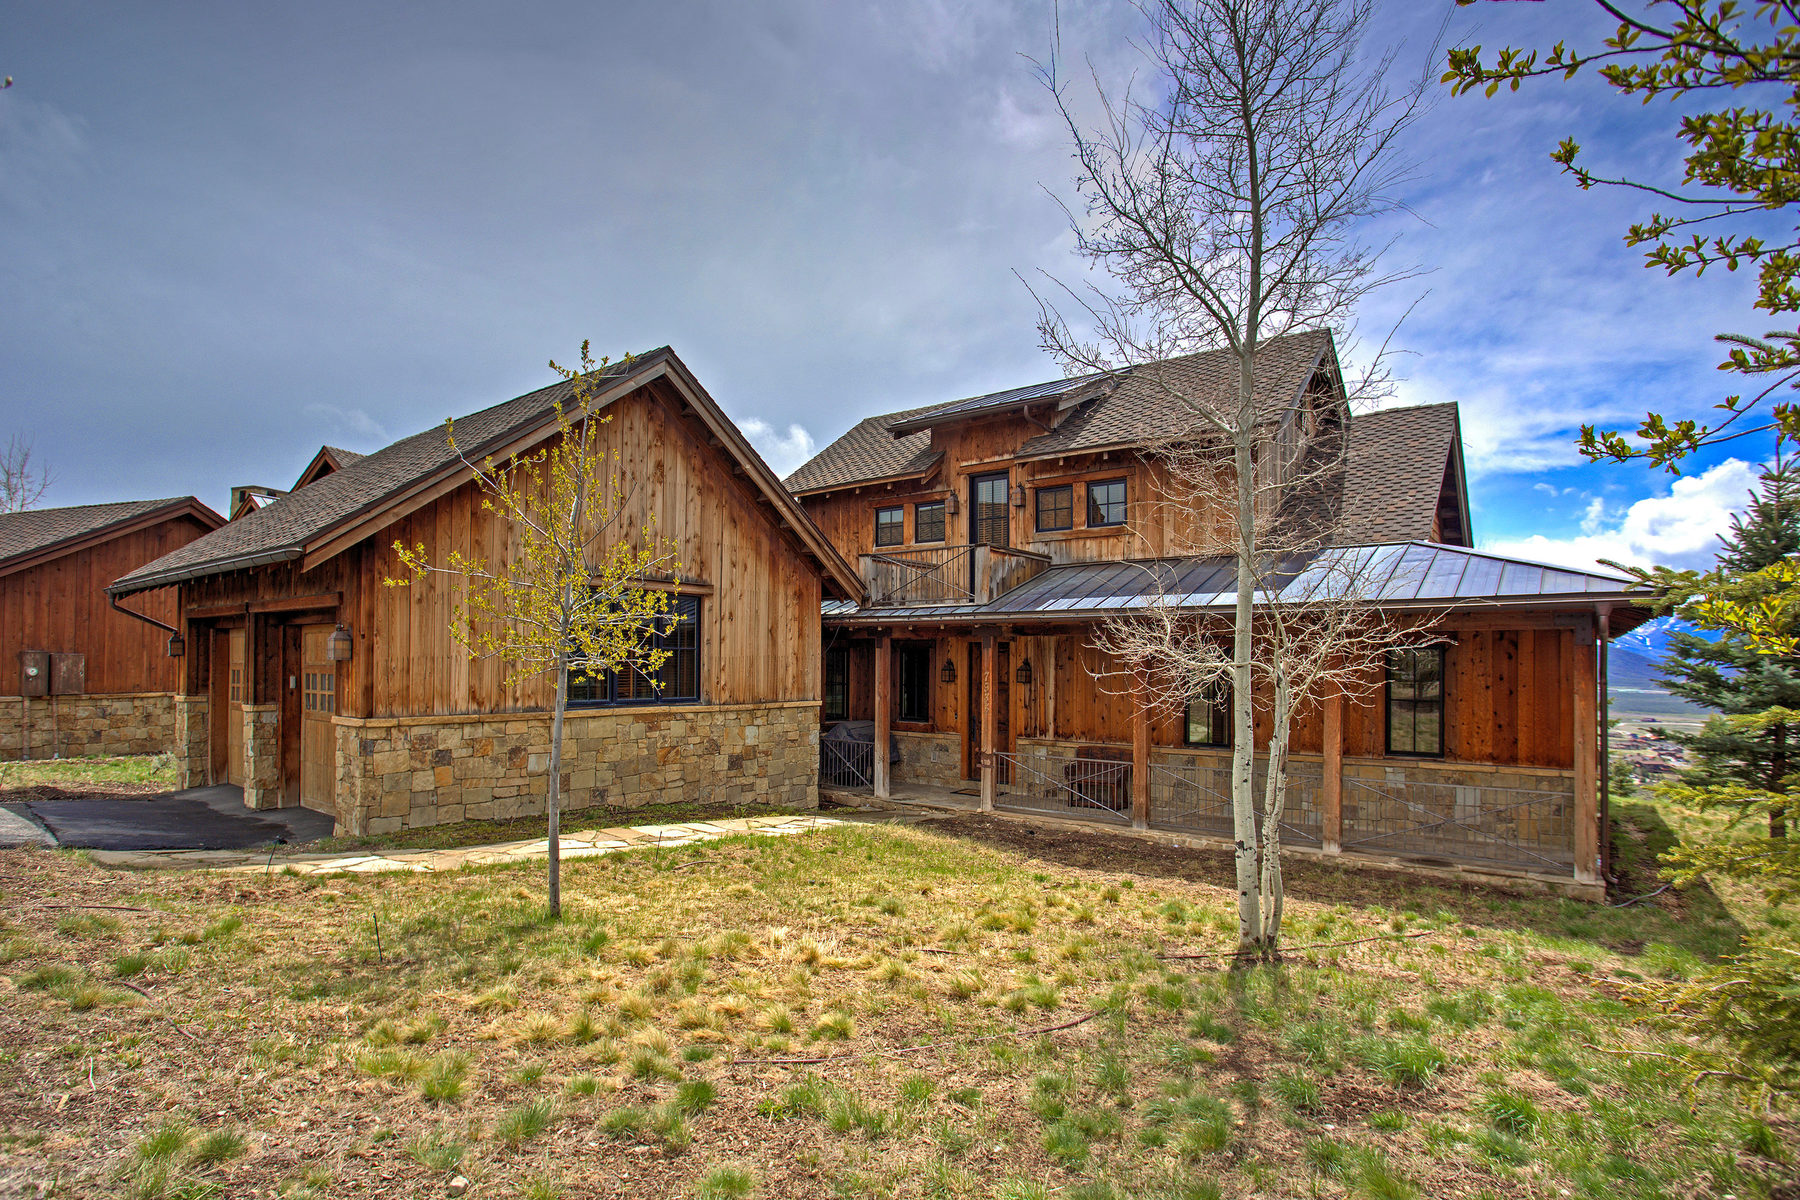 Maison unifamiliale pour l Vente à Perfect Promontory Retreat with Uncompromising Ski Mountain Views 7935 Western Sky Lot 6 Park City, Utah, 84098 États-Unis